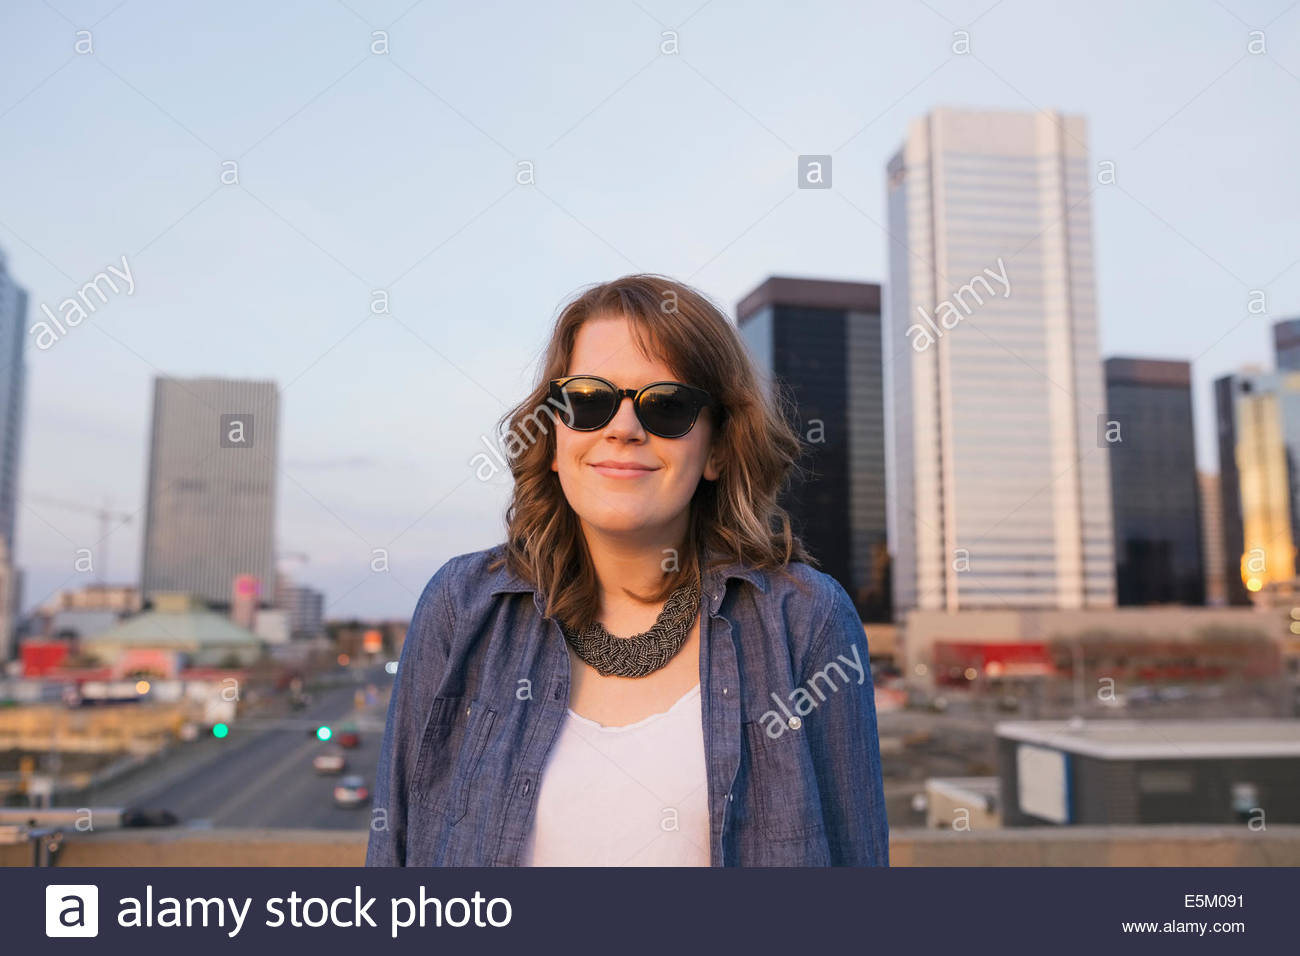 Portrait of smiling woman on urban rooftop - Stock Image